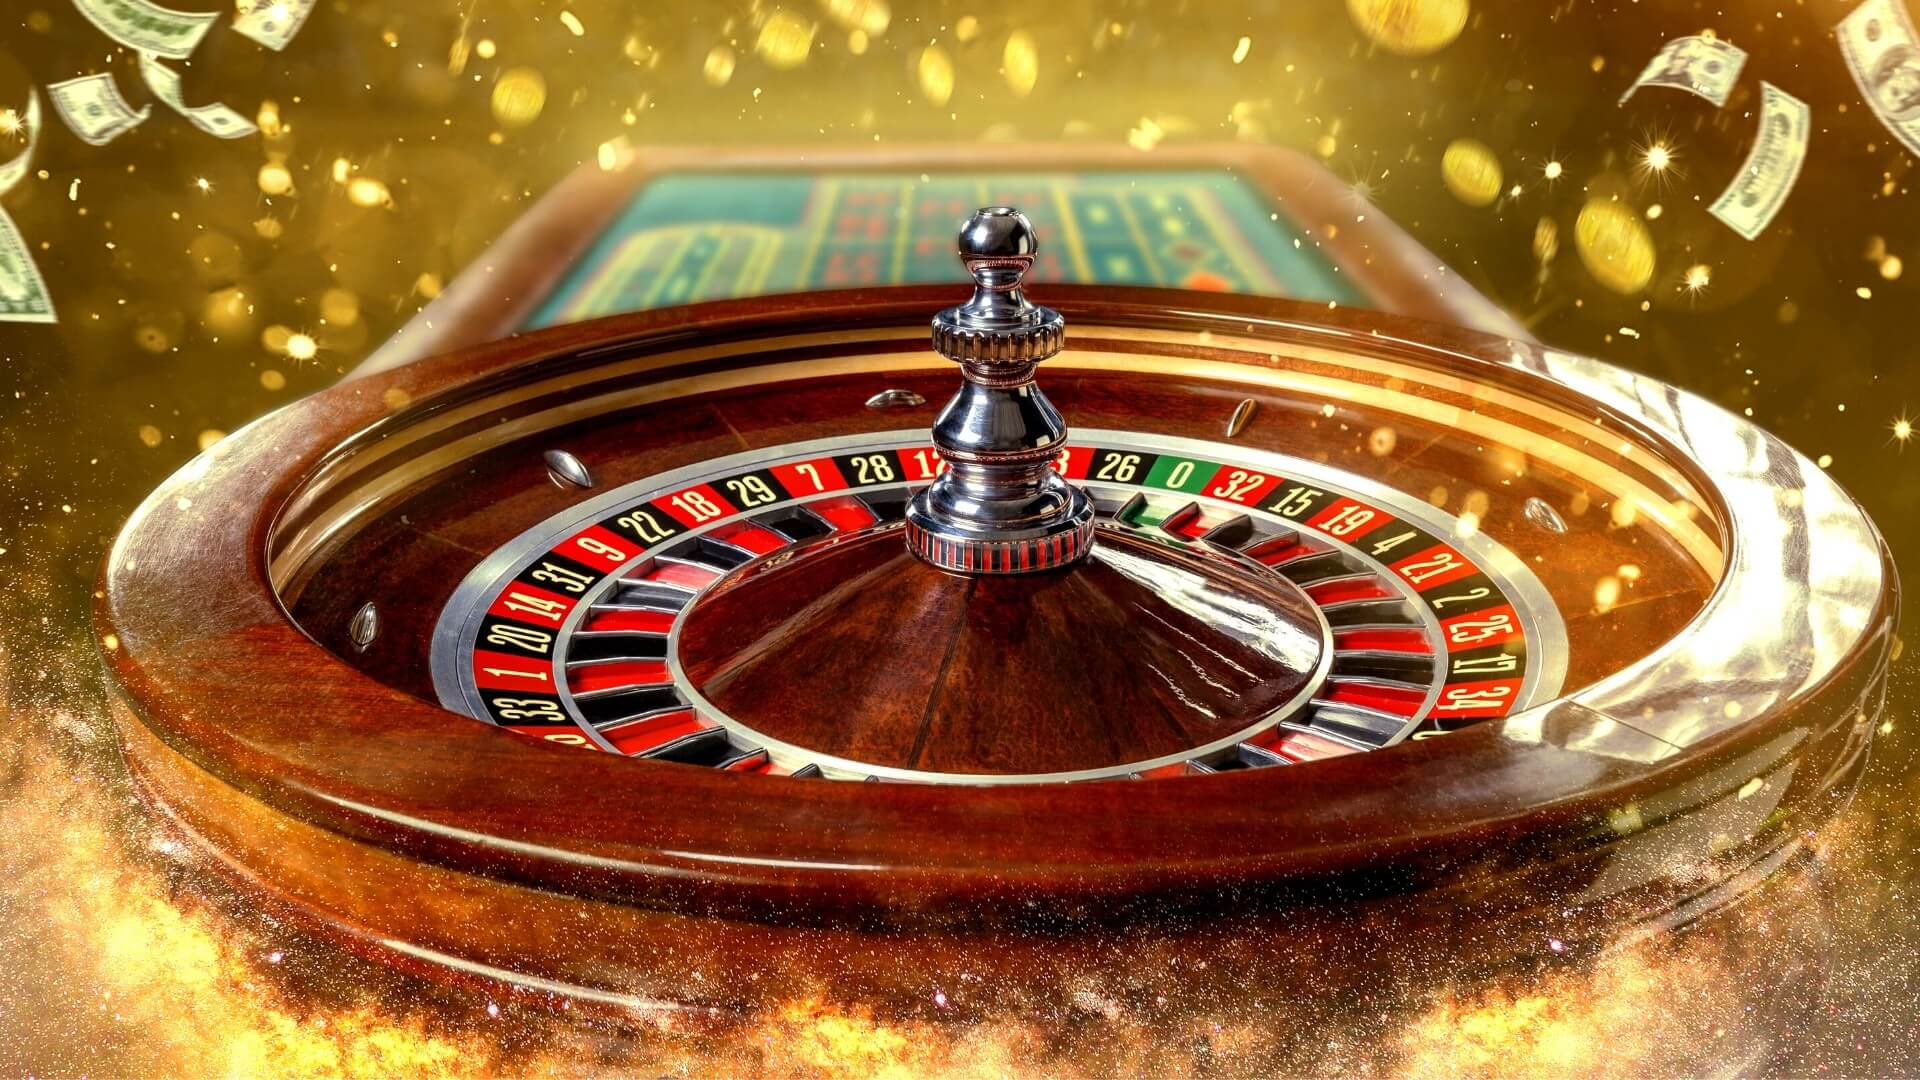 Easy Methods To Make More Online Casino By Doing Less